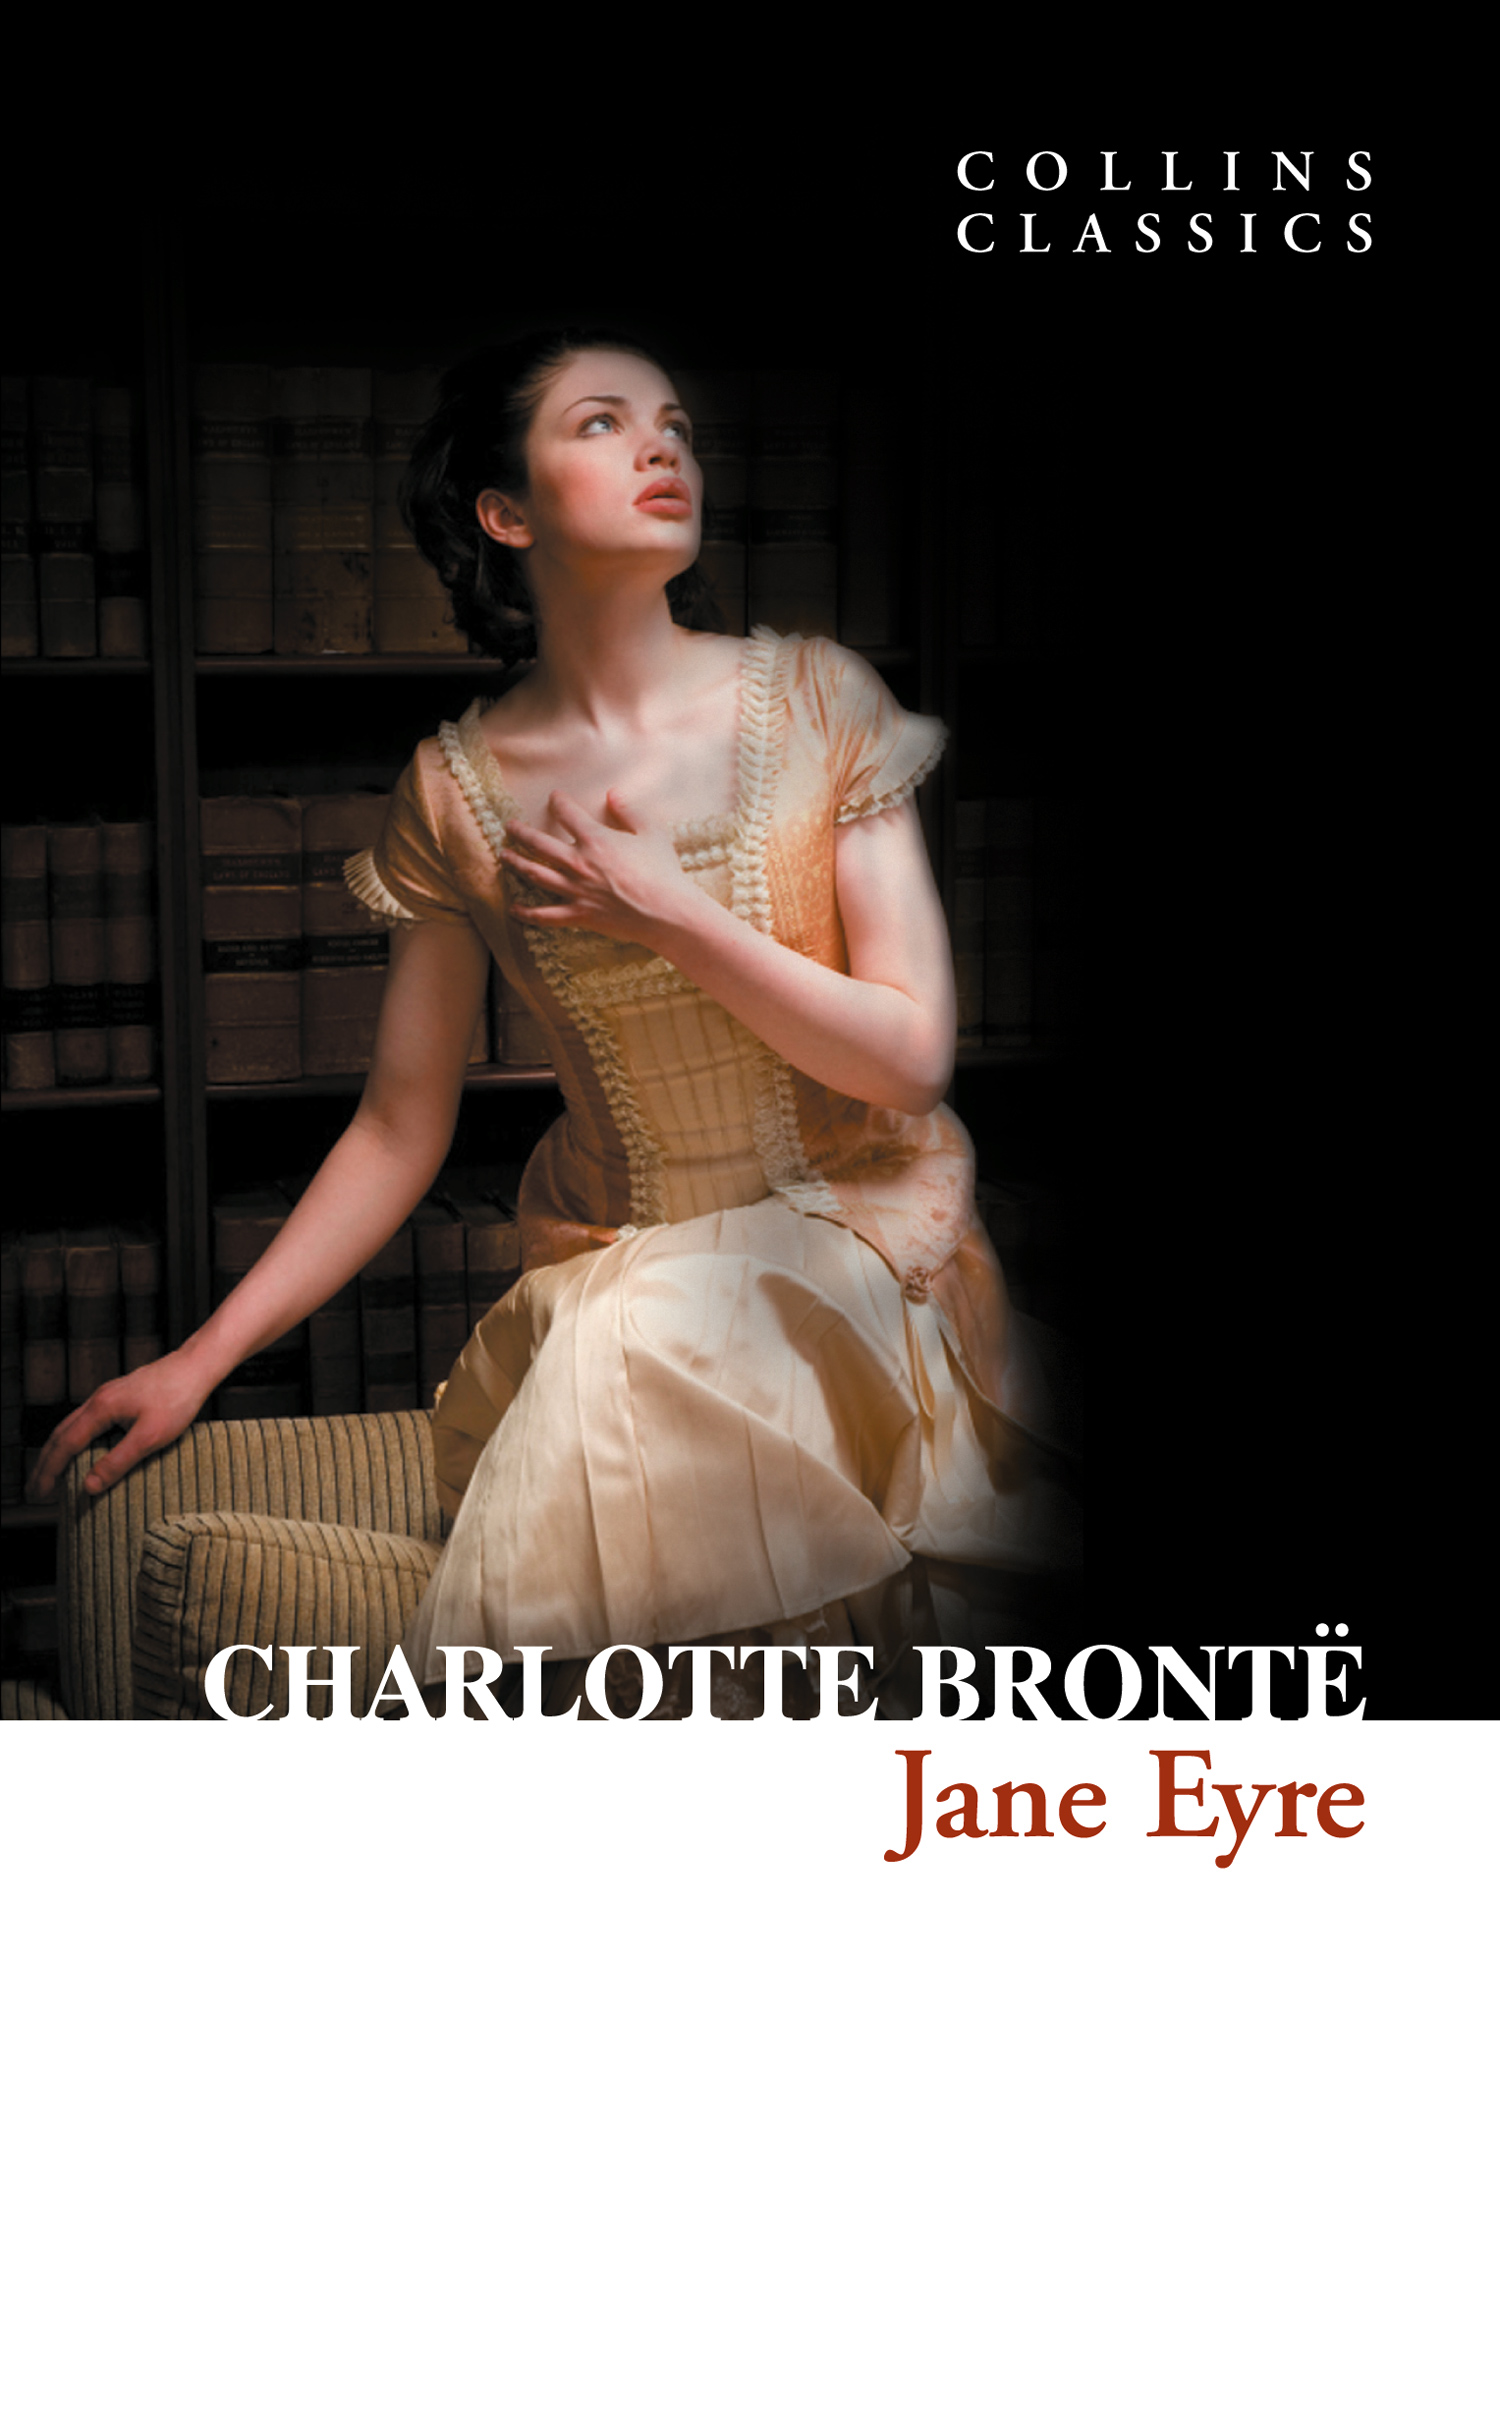 a summary and analysis of the benefits of education in charlotte brontes jane eyre Drawing on children's literature, educational texts and charlotte brontë's own childhood experience, professor sally shuttleworth looks at the passionate and defiant child of jane eyre drawing on children's literature, educational texts and charlotte brontë's own childhood experience, professor sally shuttleworth looks at the passionate and.